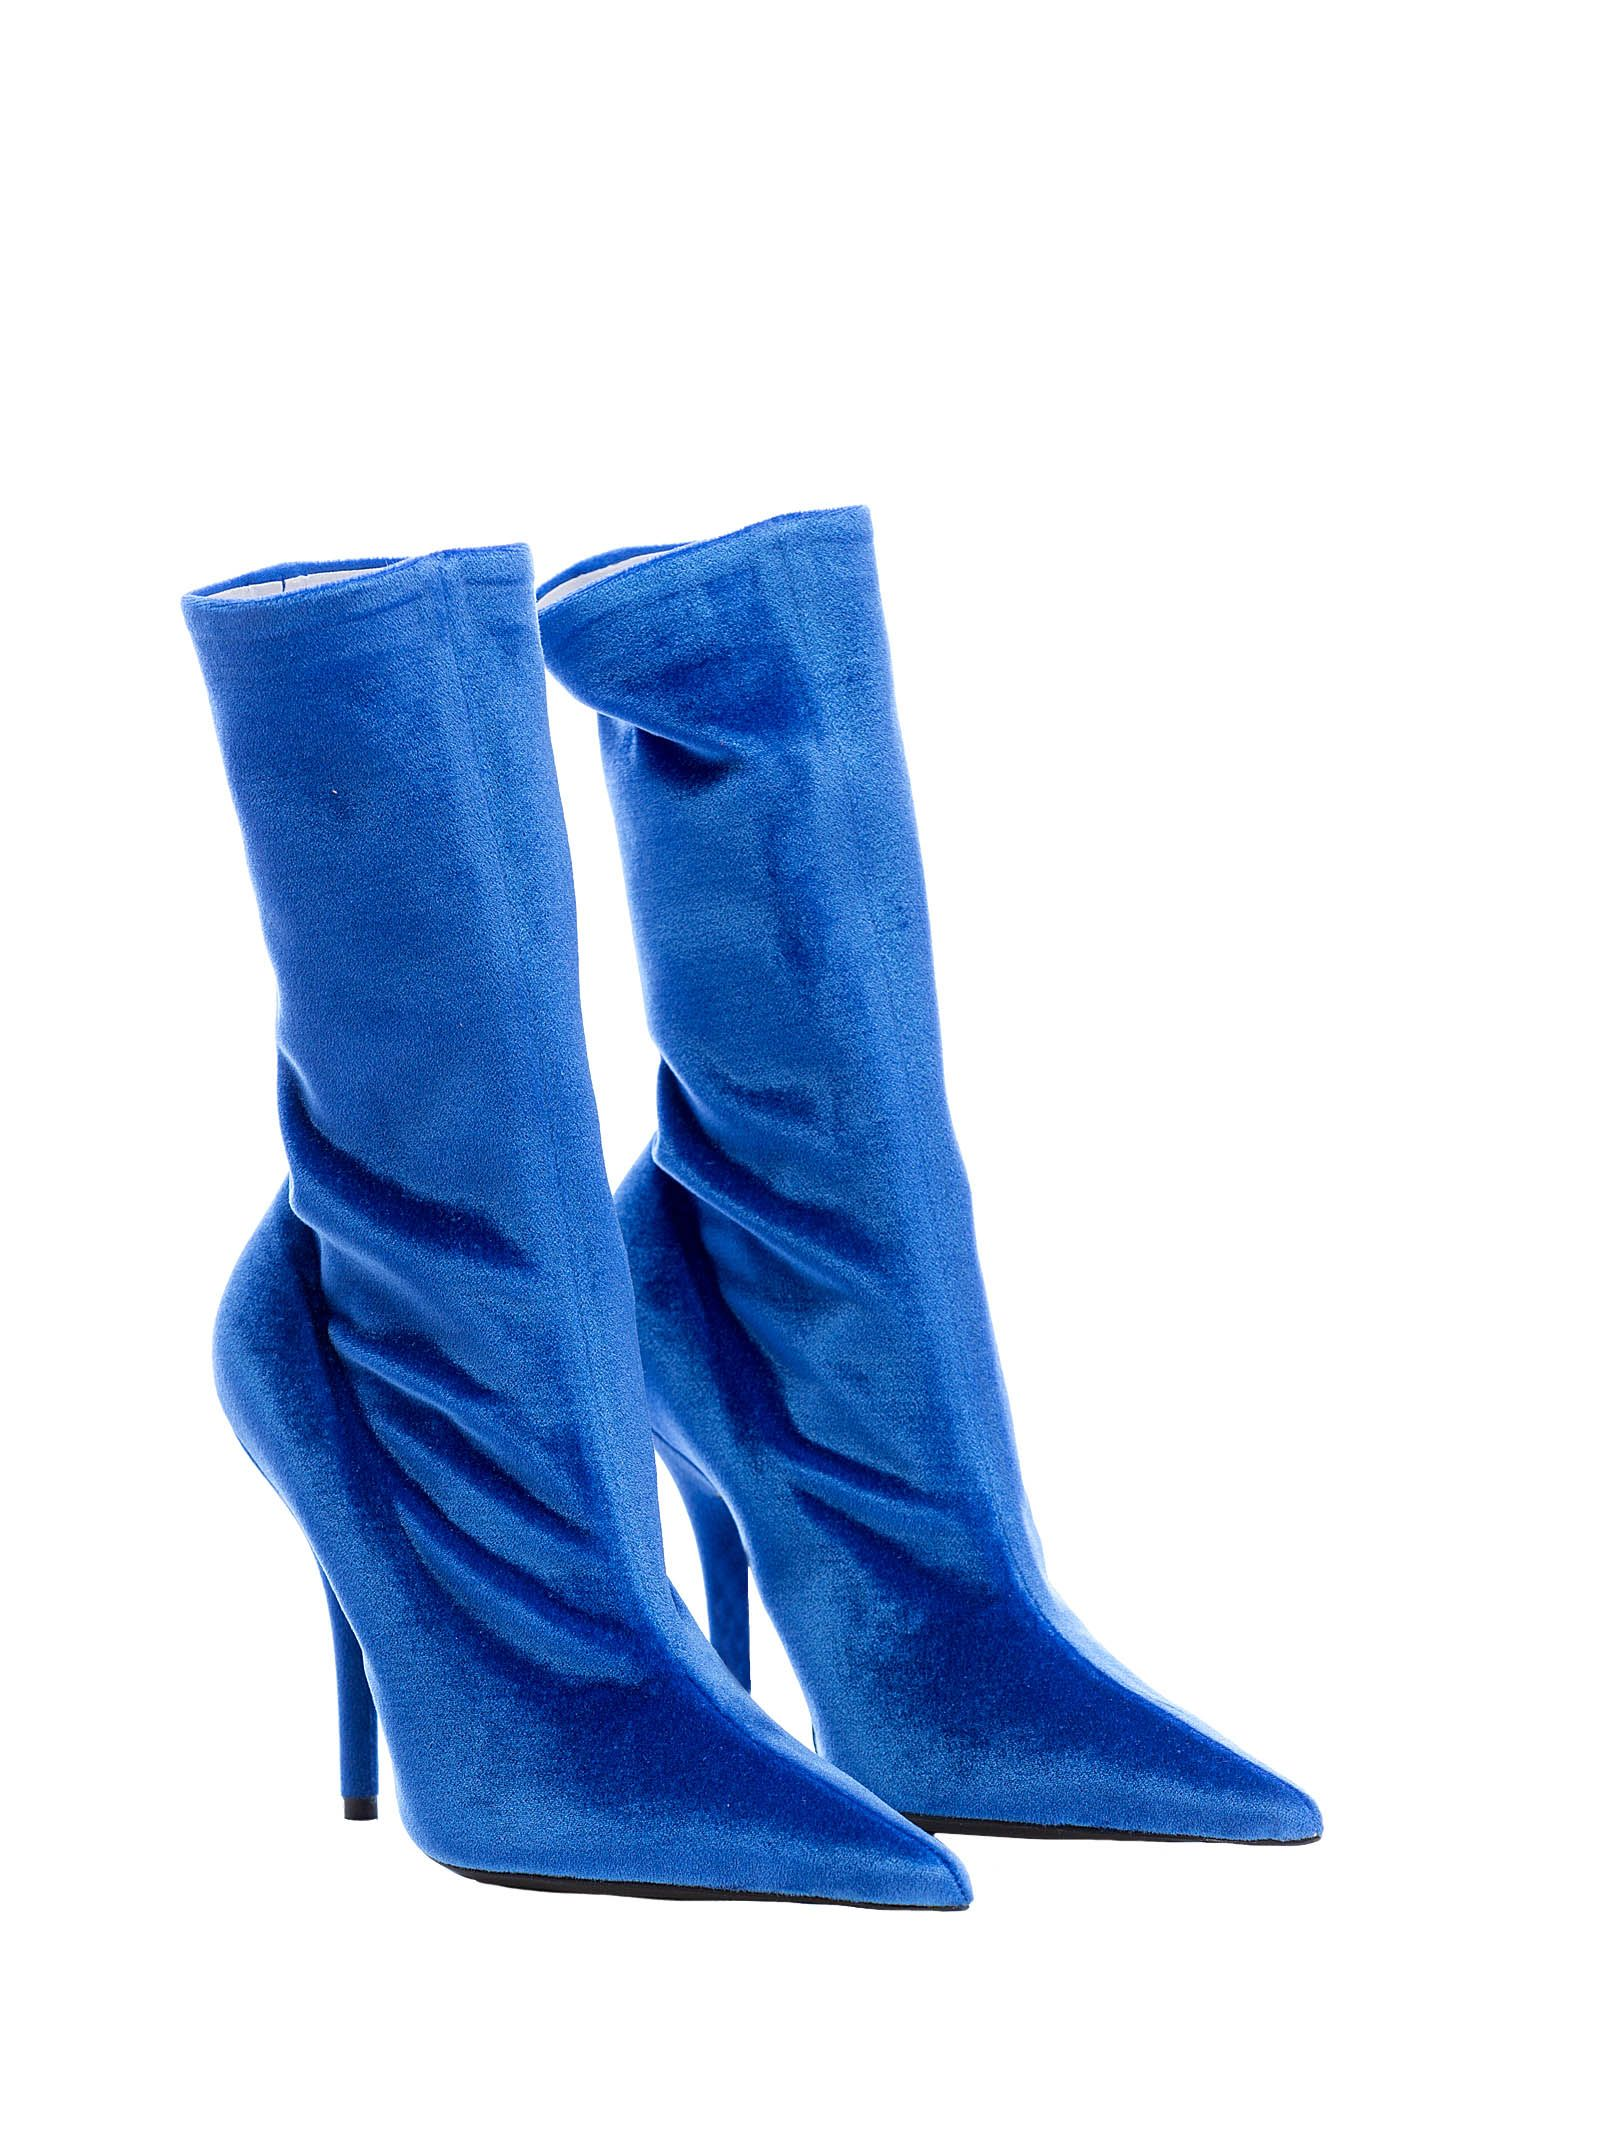 Image result for balenciaga knife boots